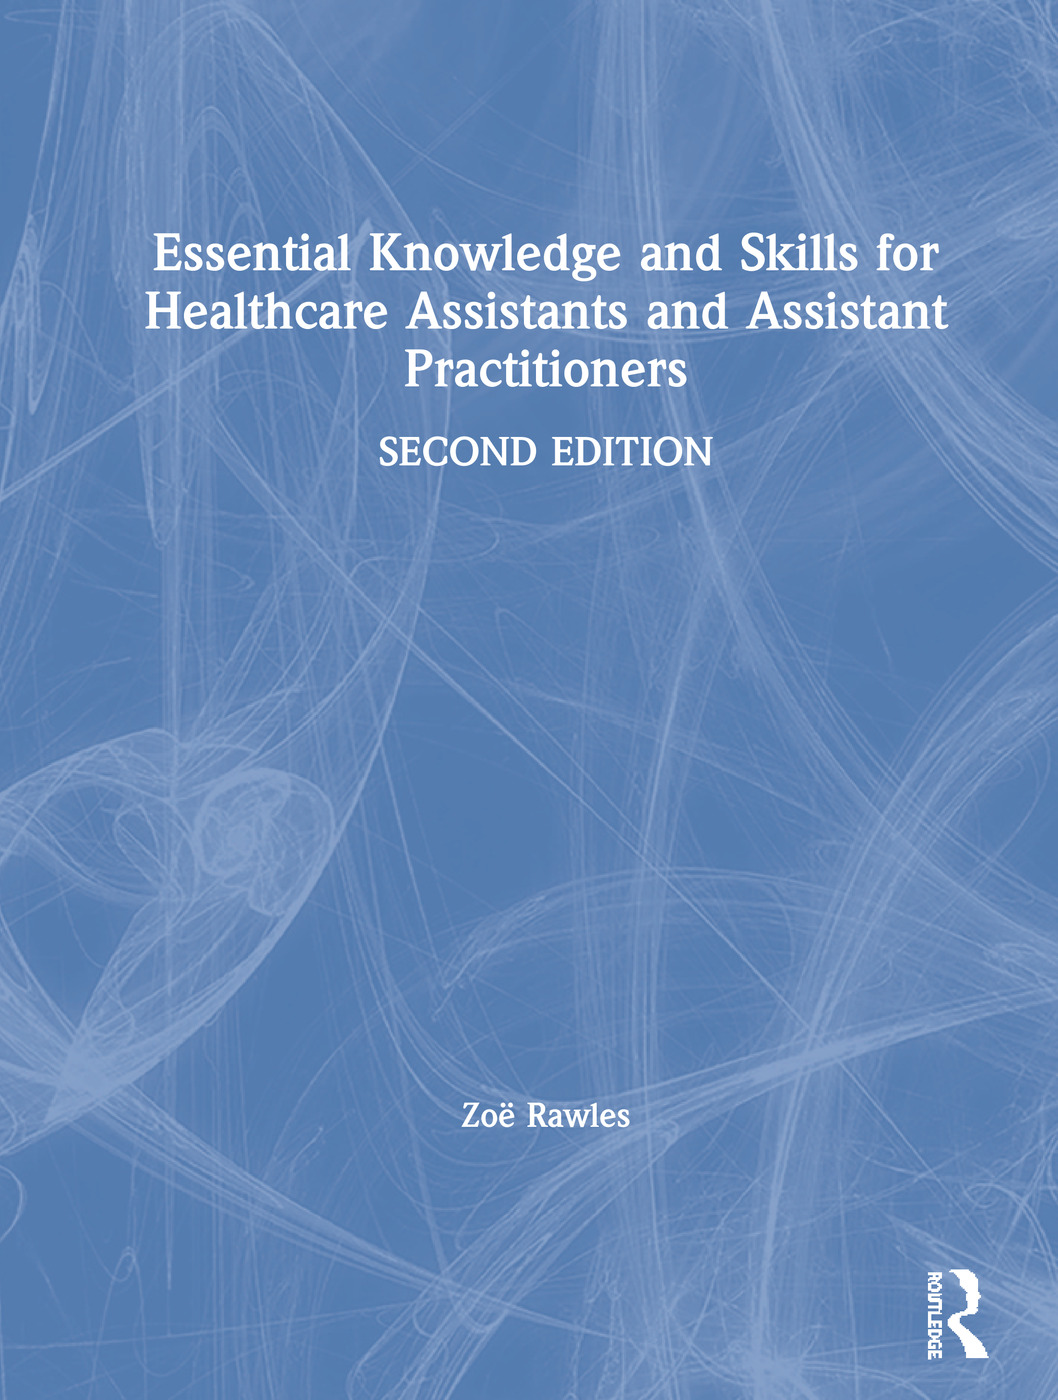 Essential Knowledge and Skills for Healthcare Assistants and Assistant Practitioners book cover